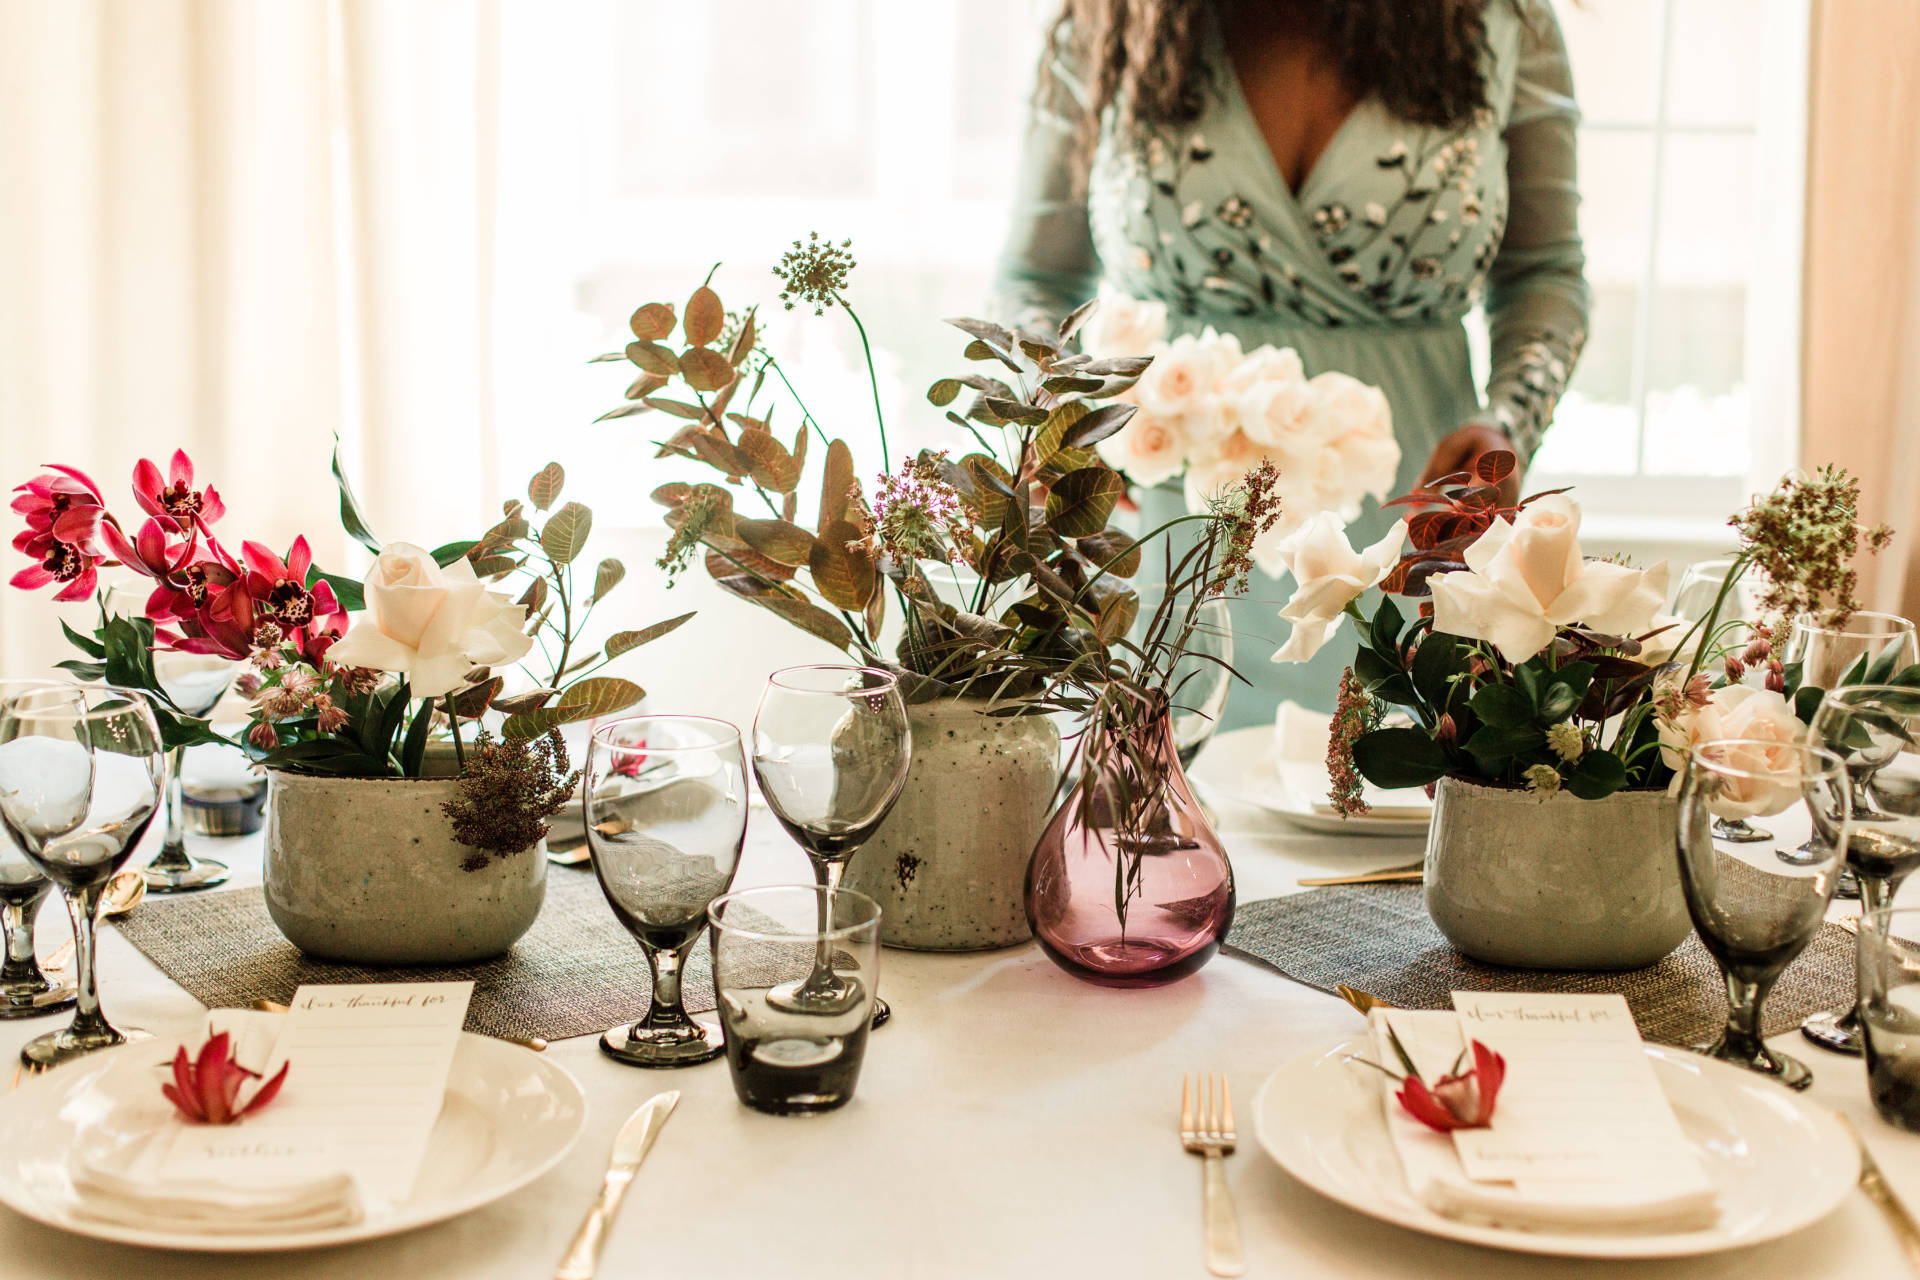 Inspiration for your Thanksgiving or Christmas Table. Elegance at his finest! Step up your tables cape presentation this holiday season with a few minor details!